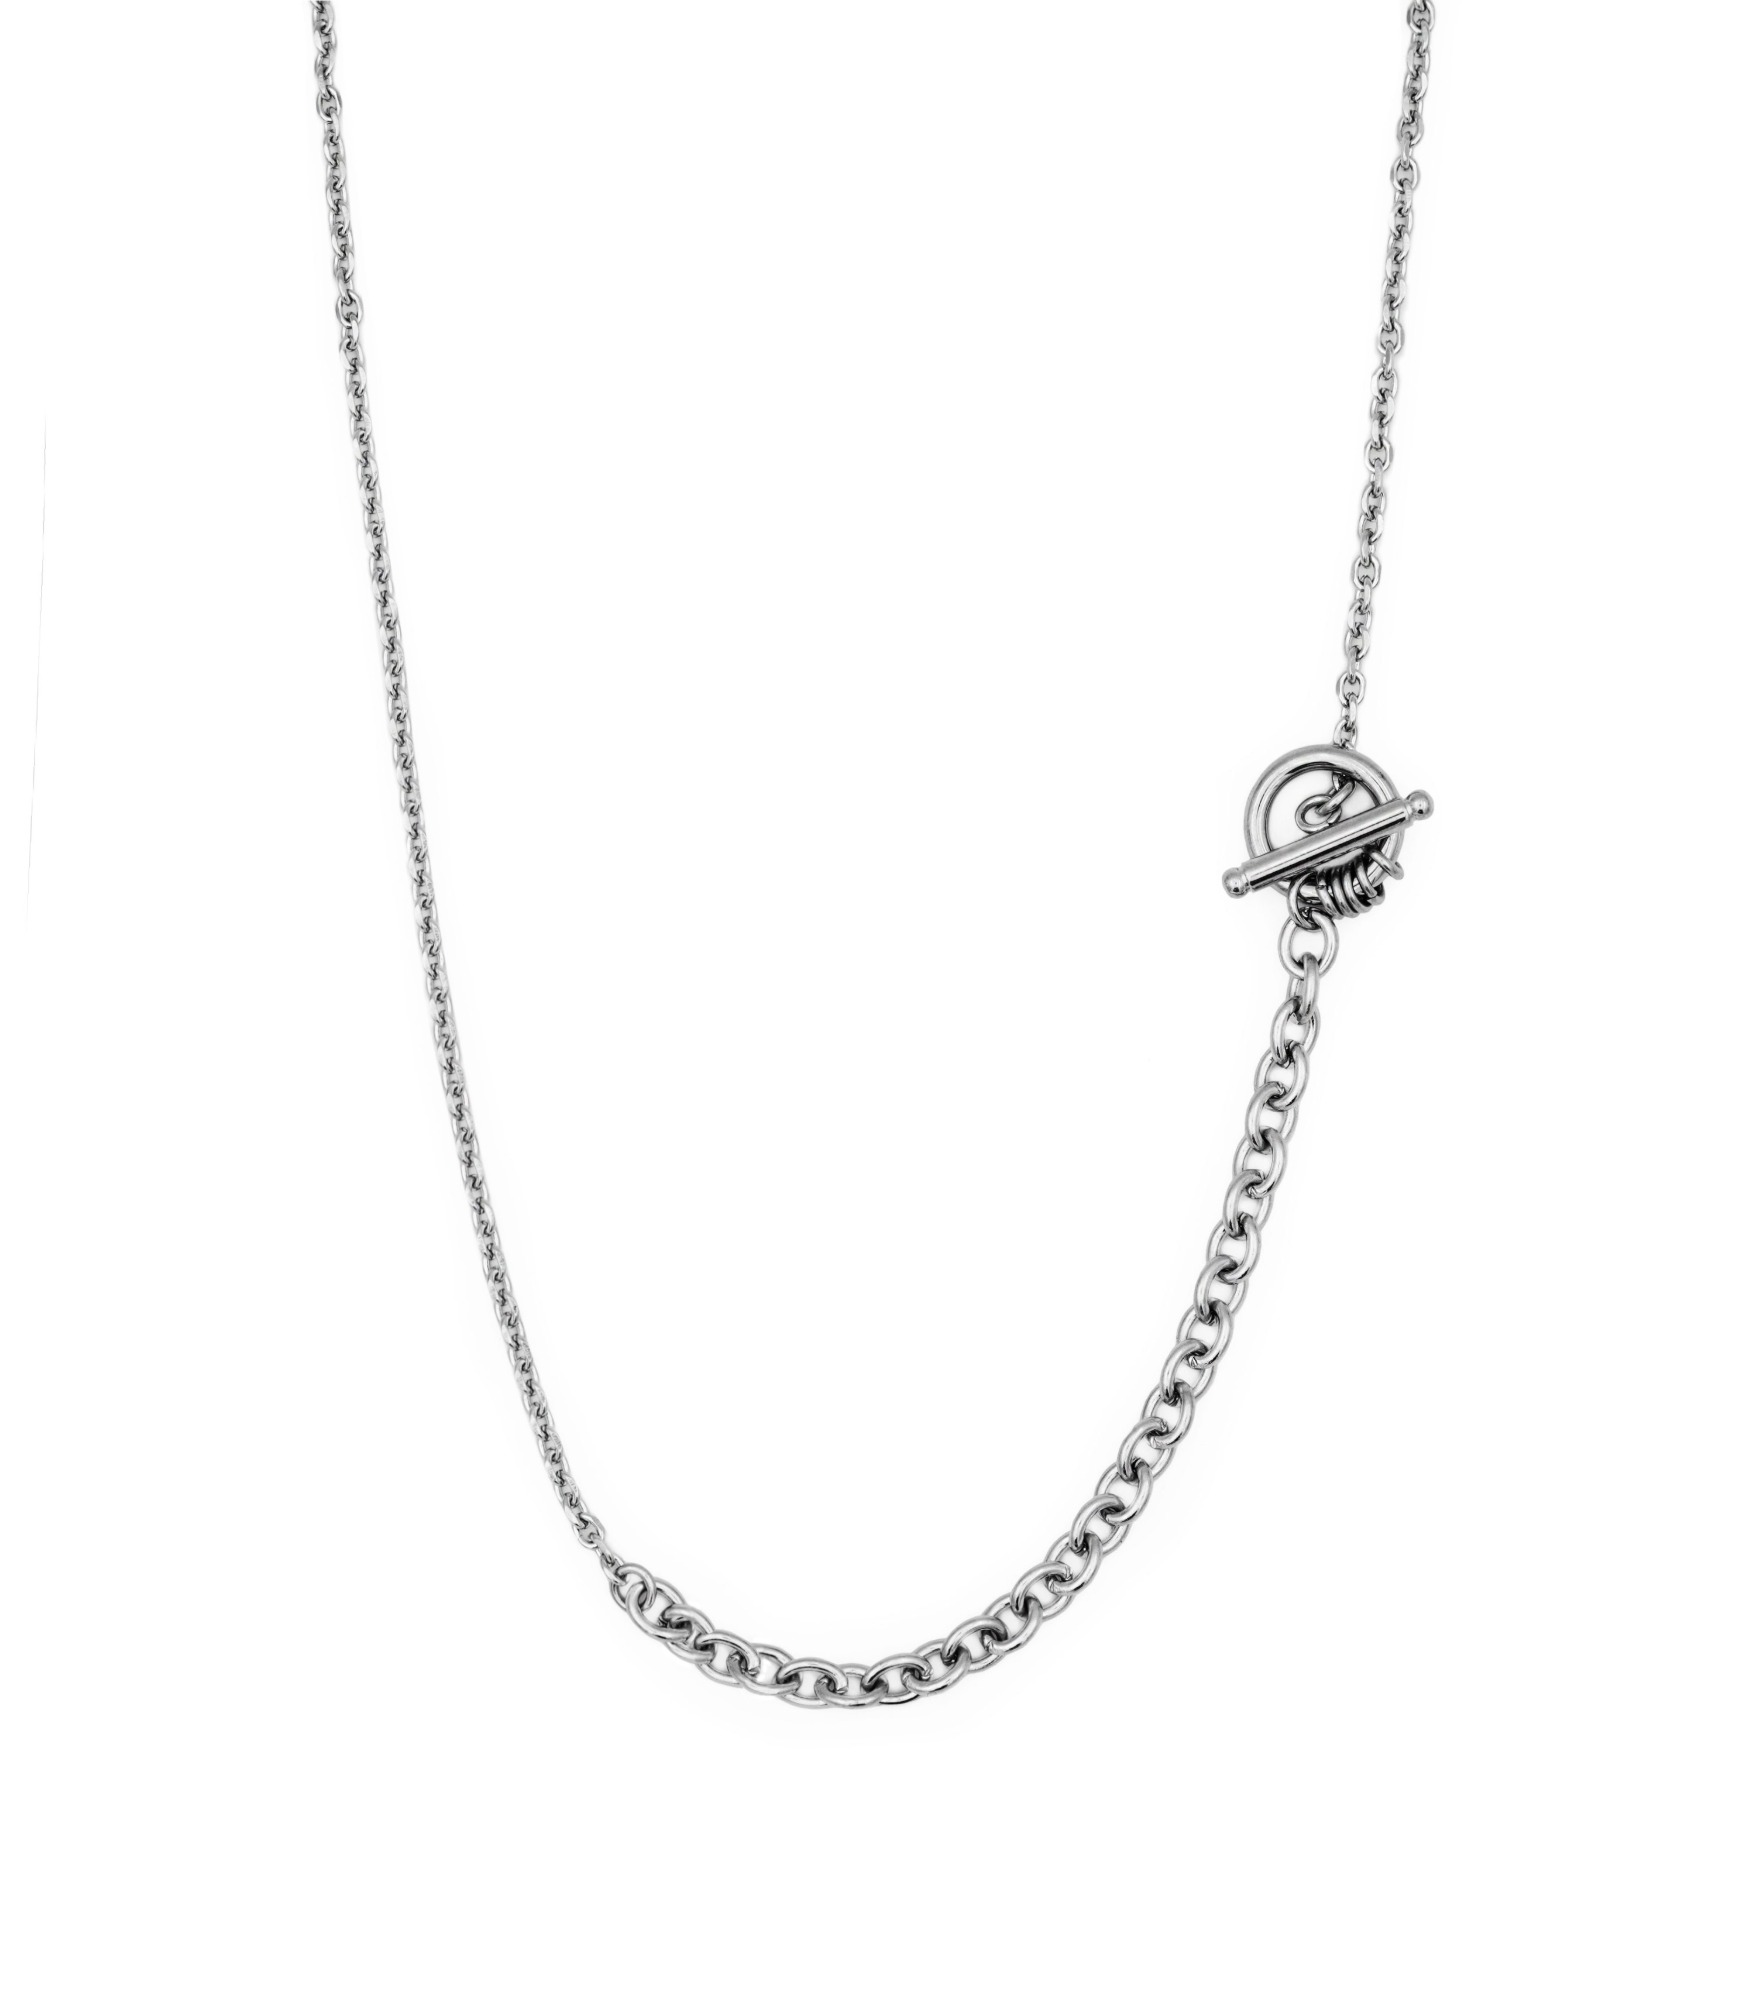 Chain Mix Necklace (Toggle bar)